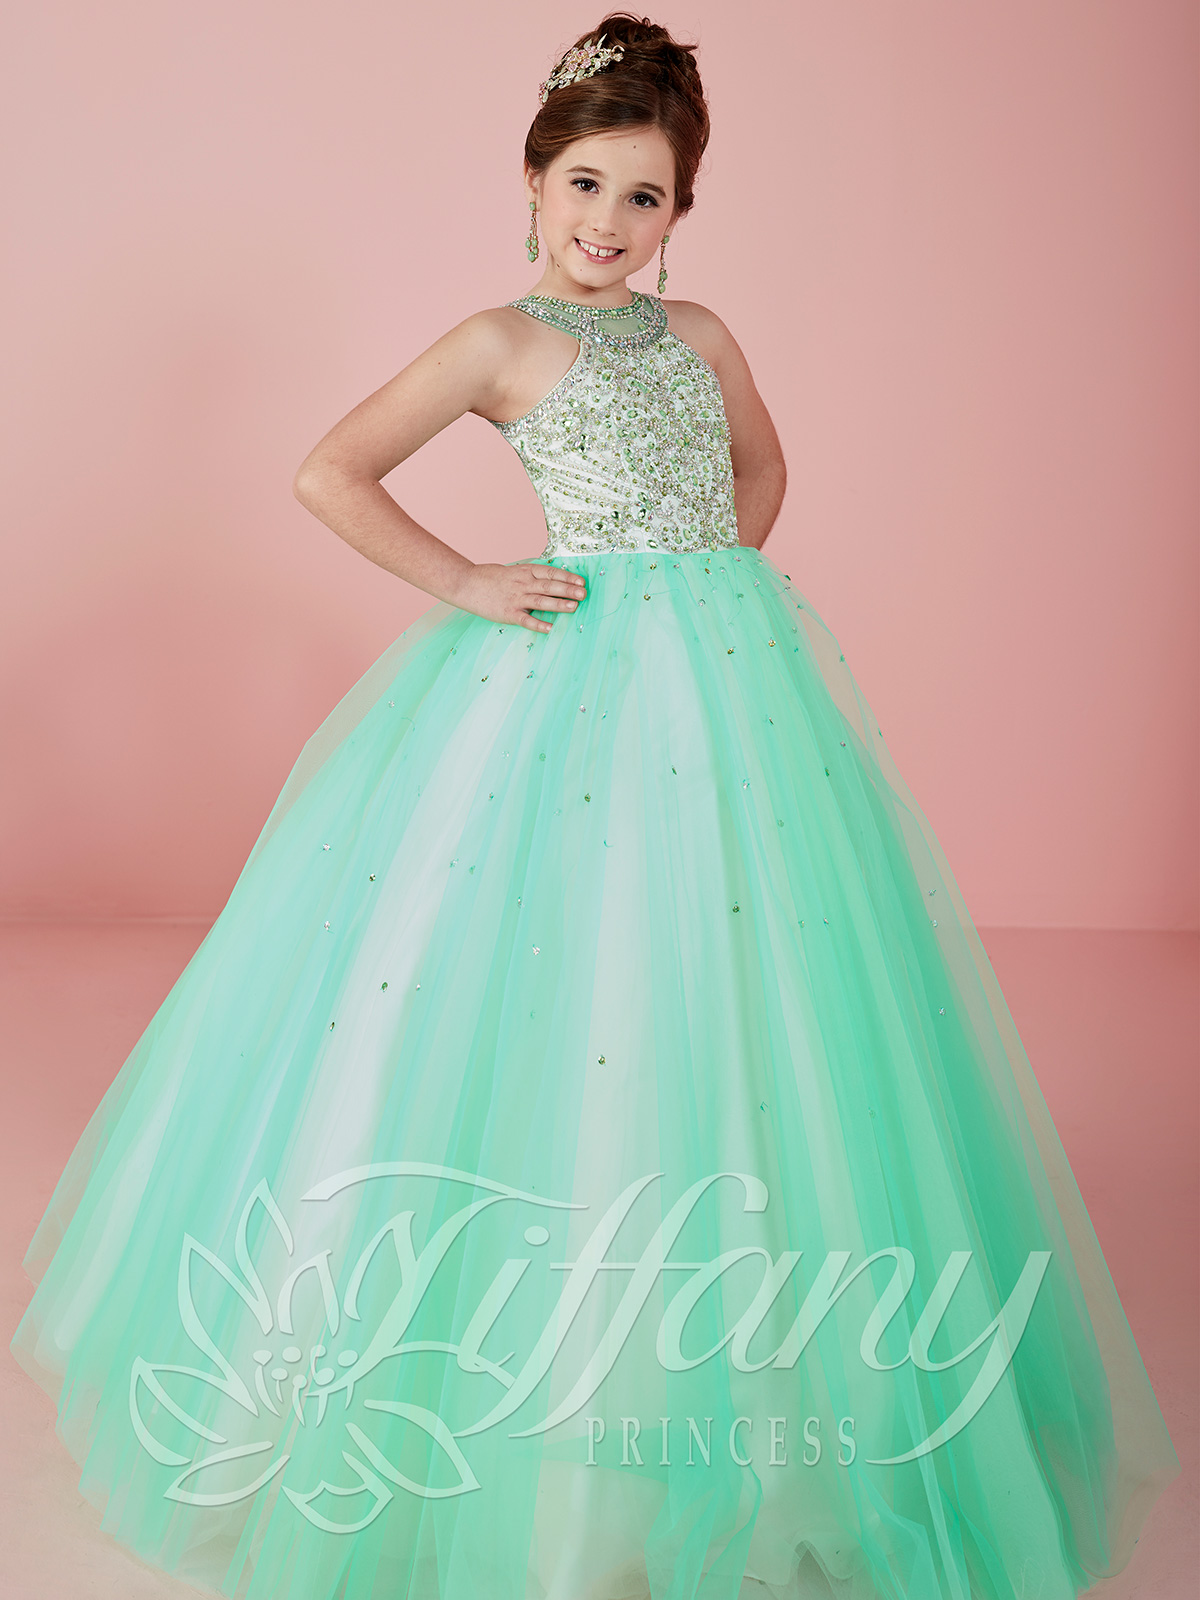 Tiffany Princess 13470 Halter Beaded Ball Gown Pageant